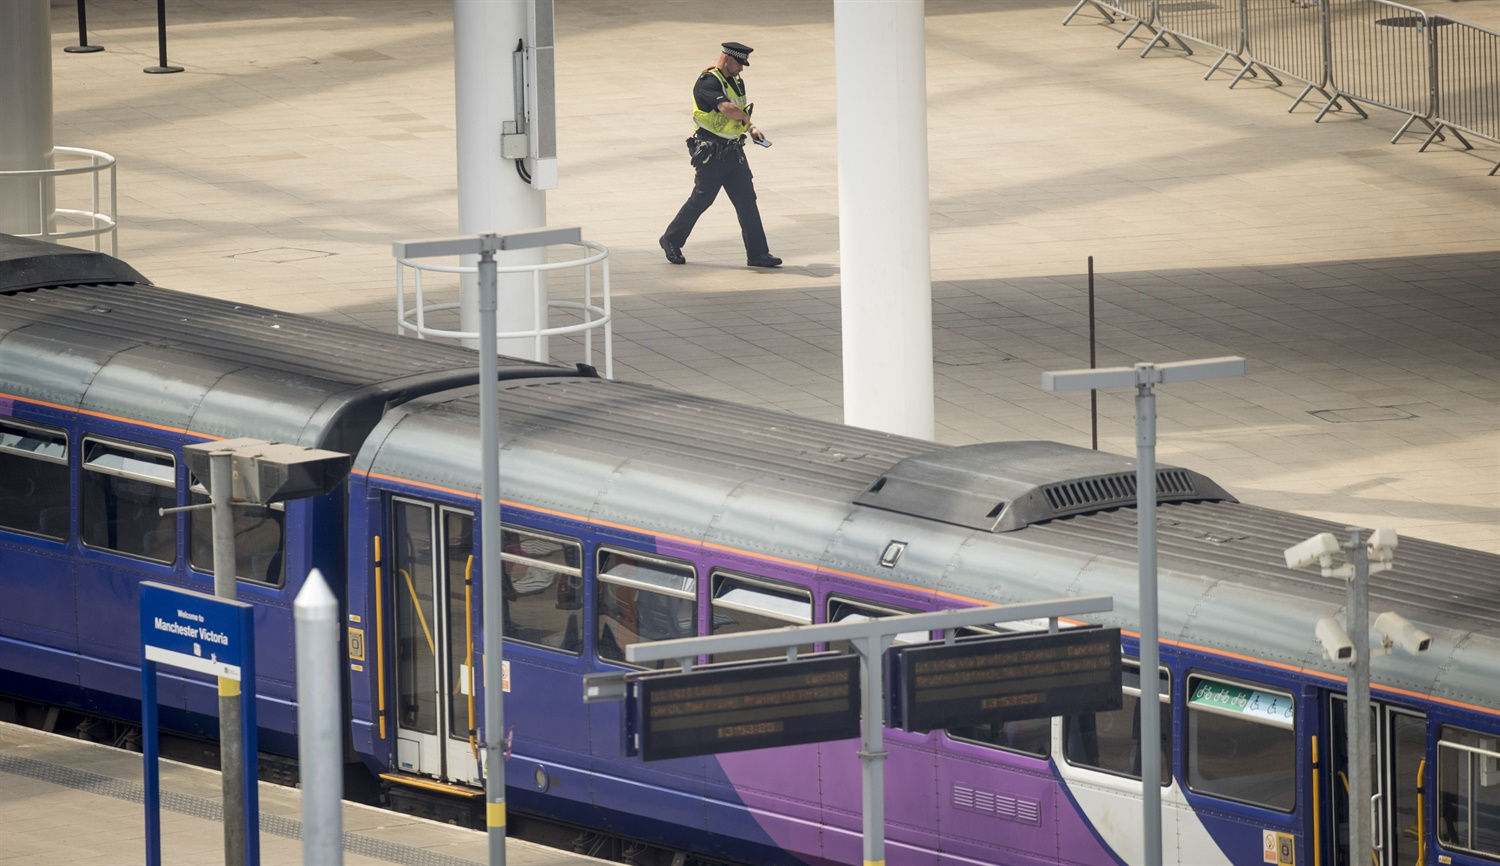 BTP steps up officer numbers at stations as terrorist threat level raised